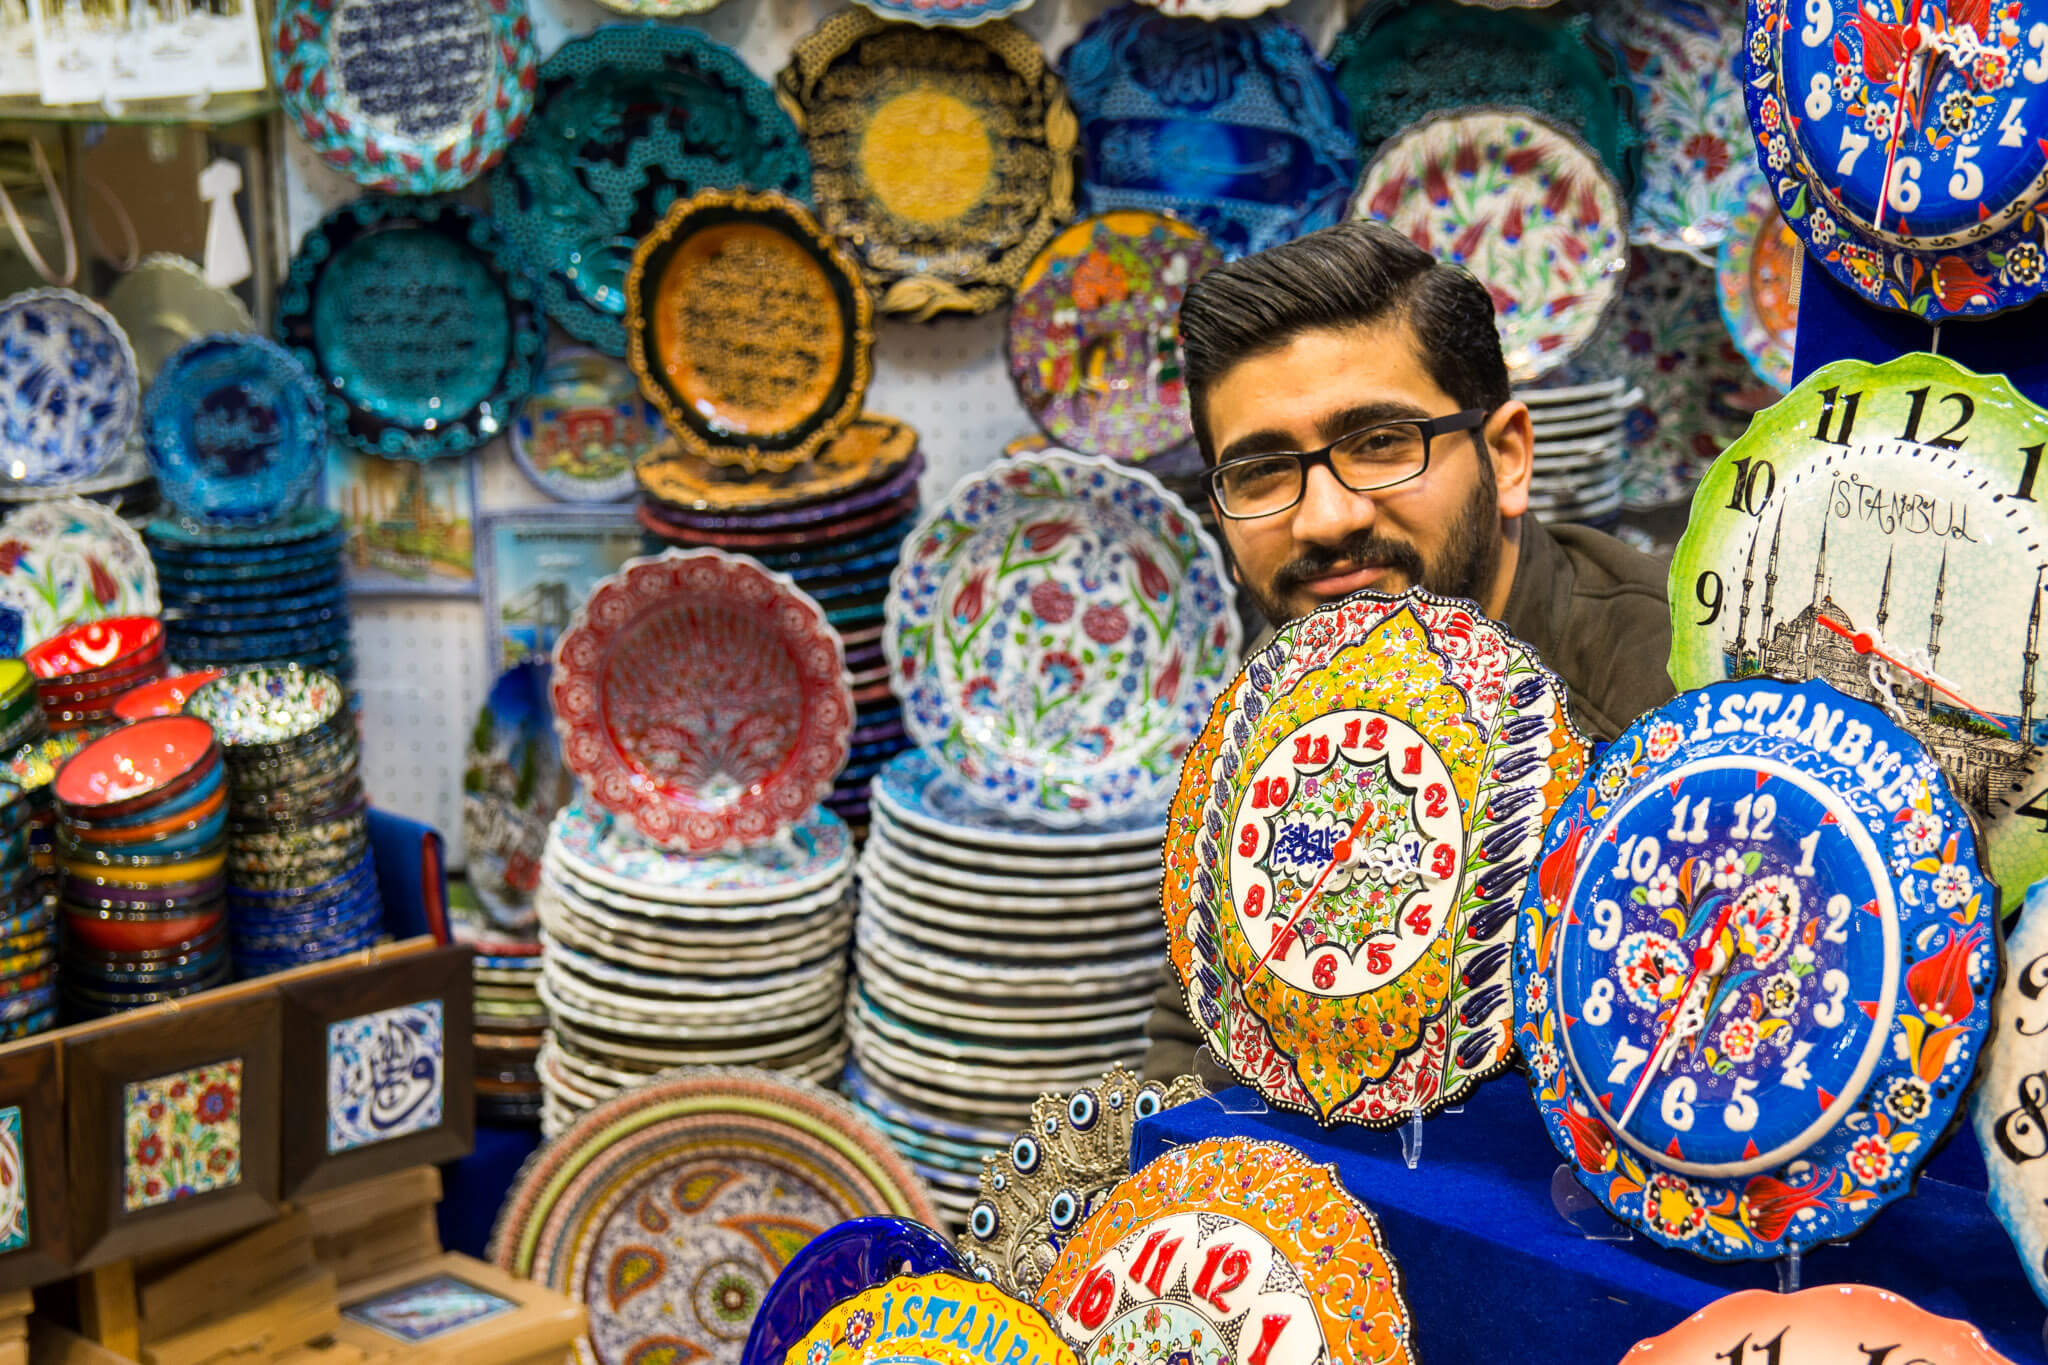 Vendors at the Grand Bazaar of Istanbul